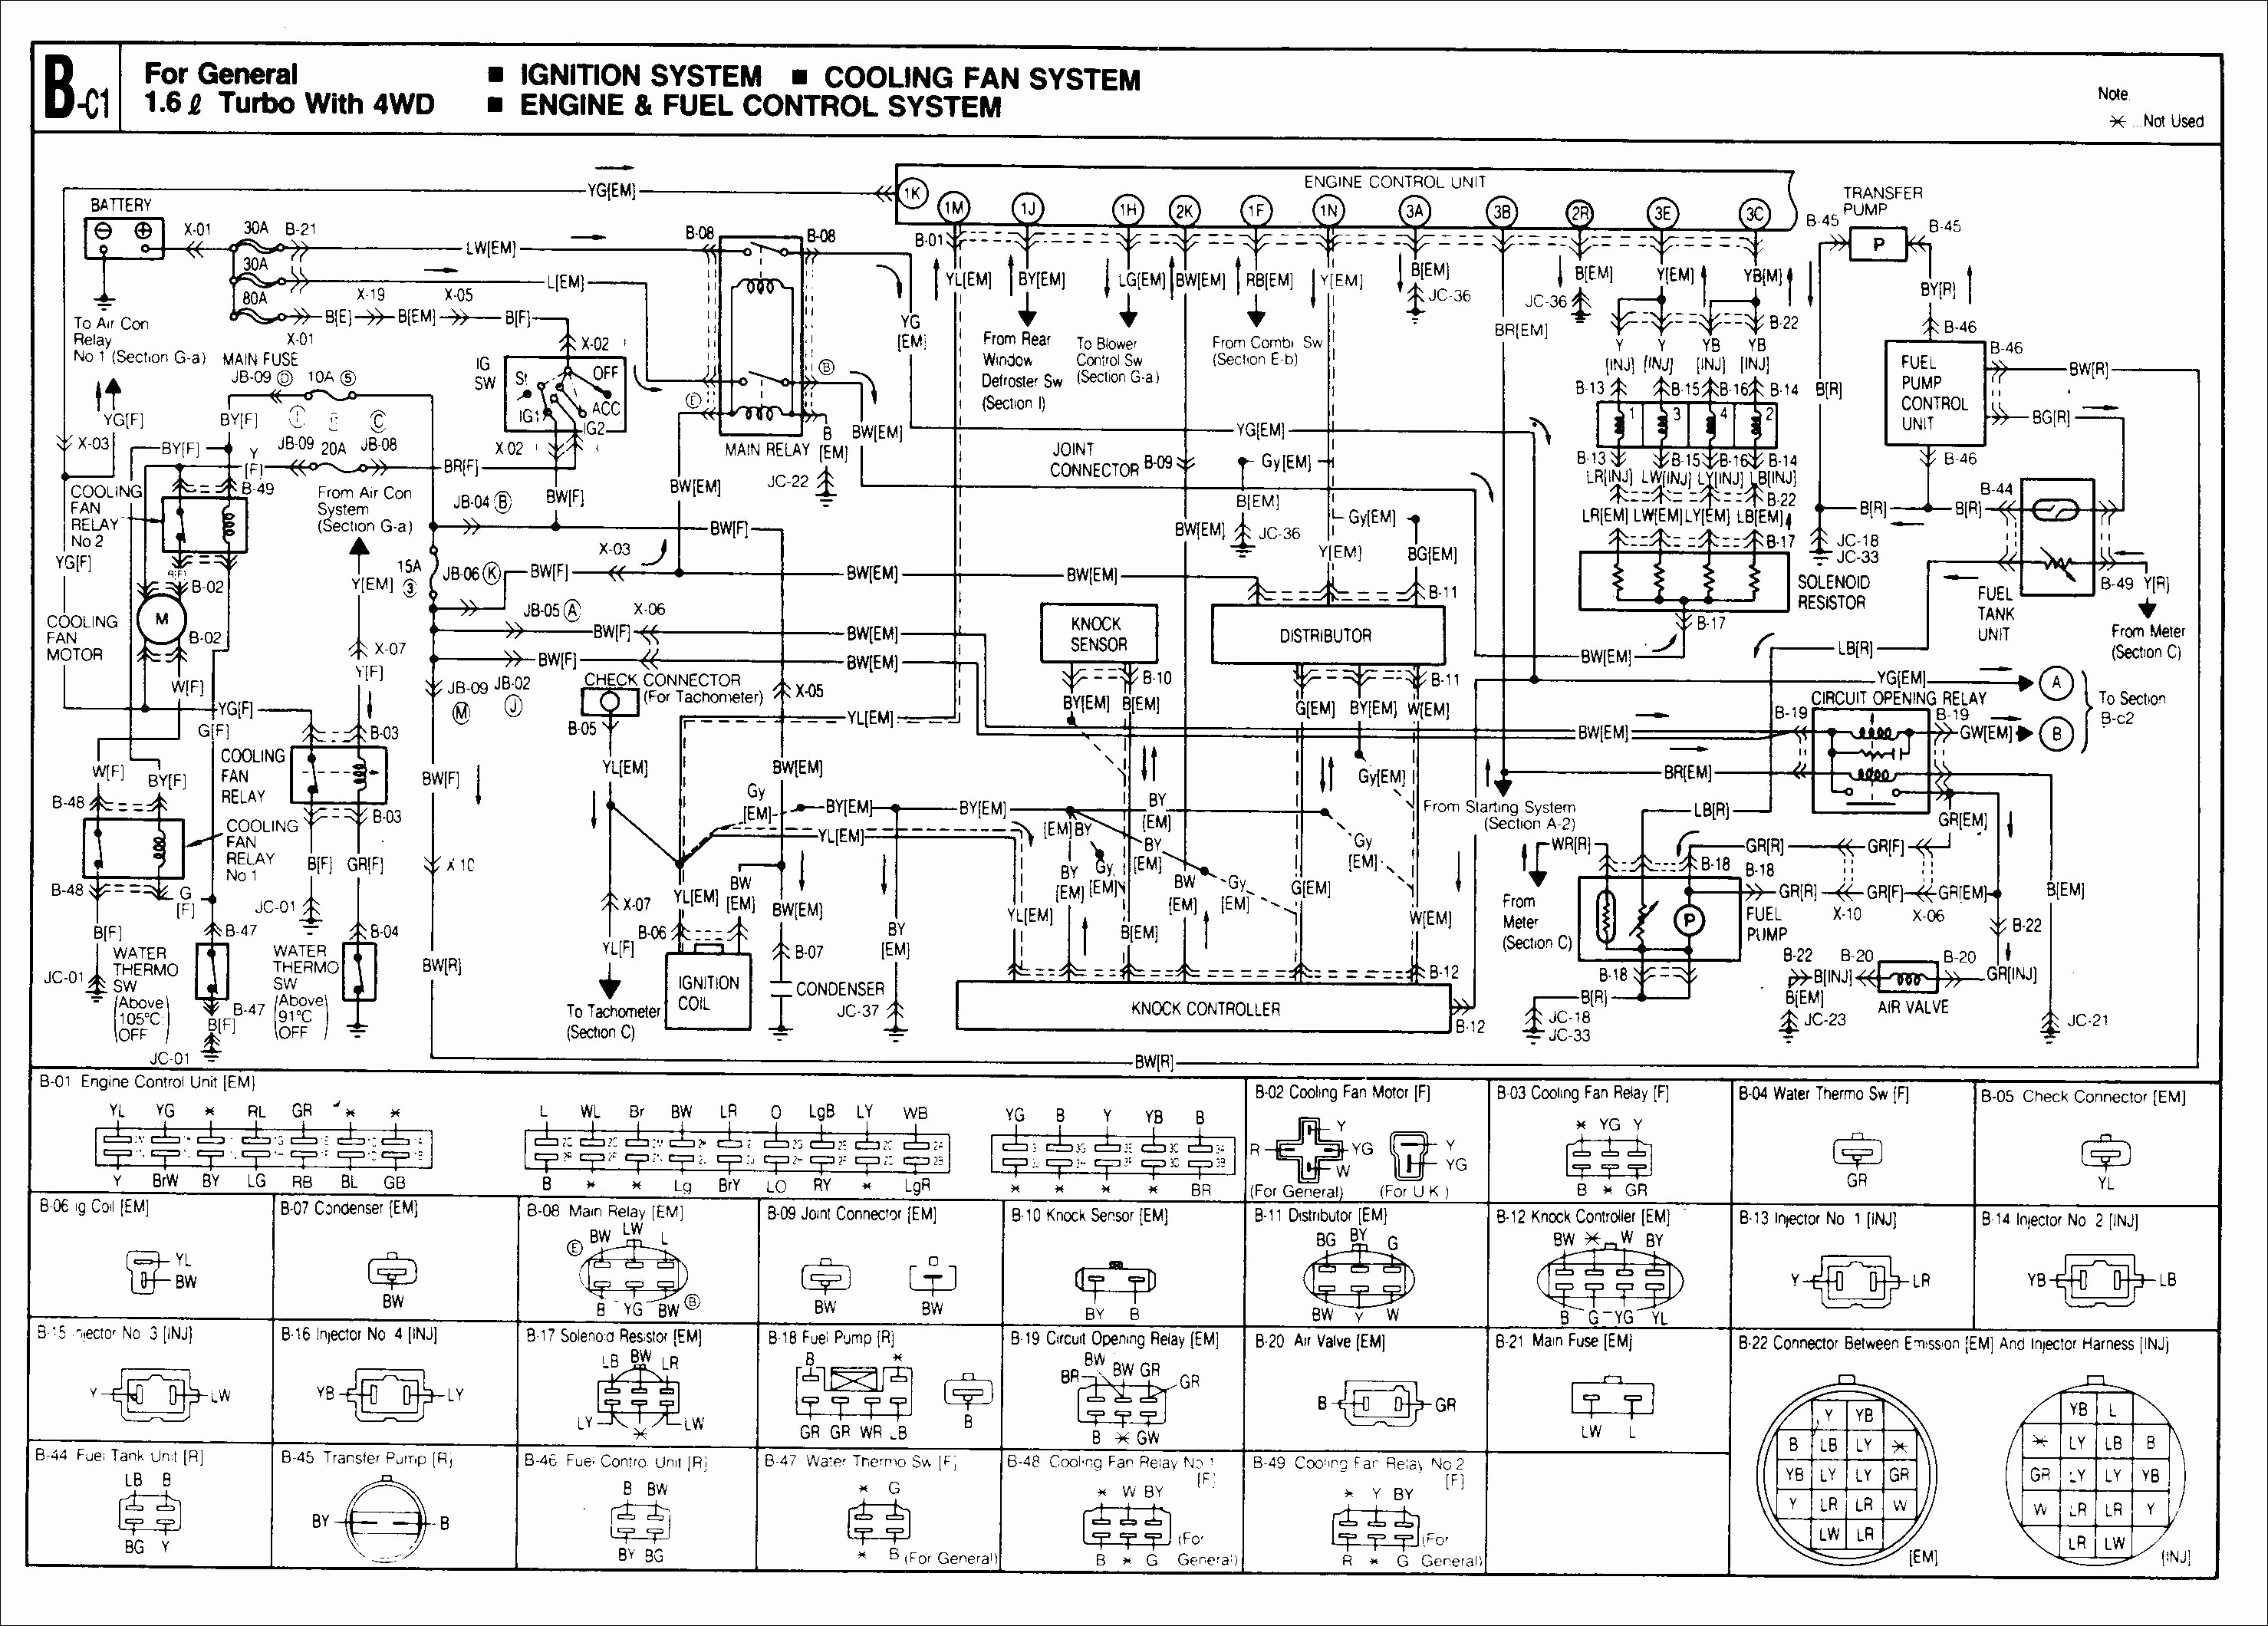 Wiring Diagrams 1998 Bluebird - Home Wiring Diagram on